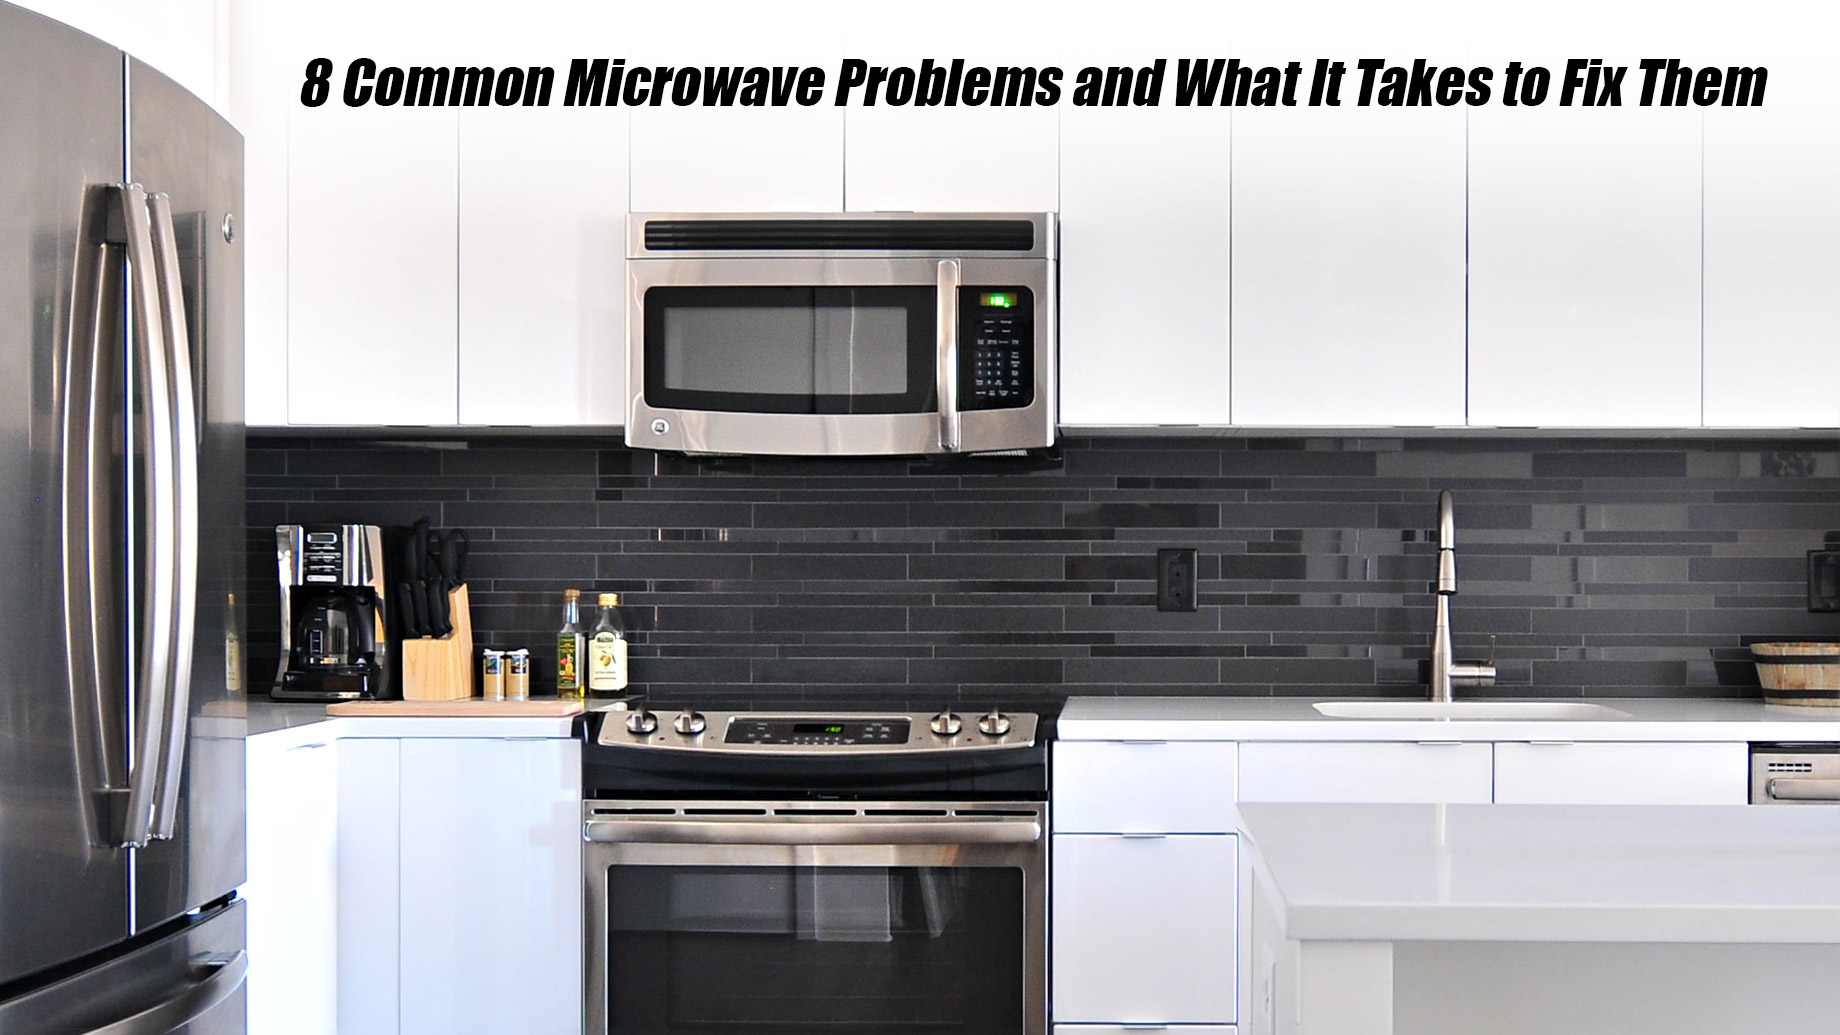 8 Common Microwave Problems and What It Takes to Fix Them